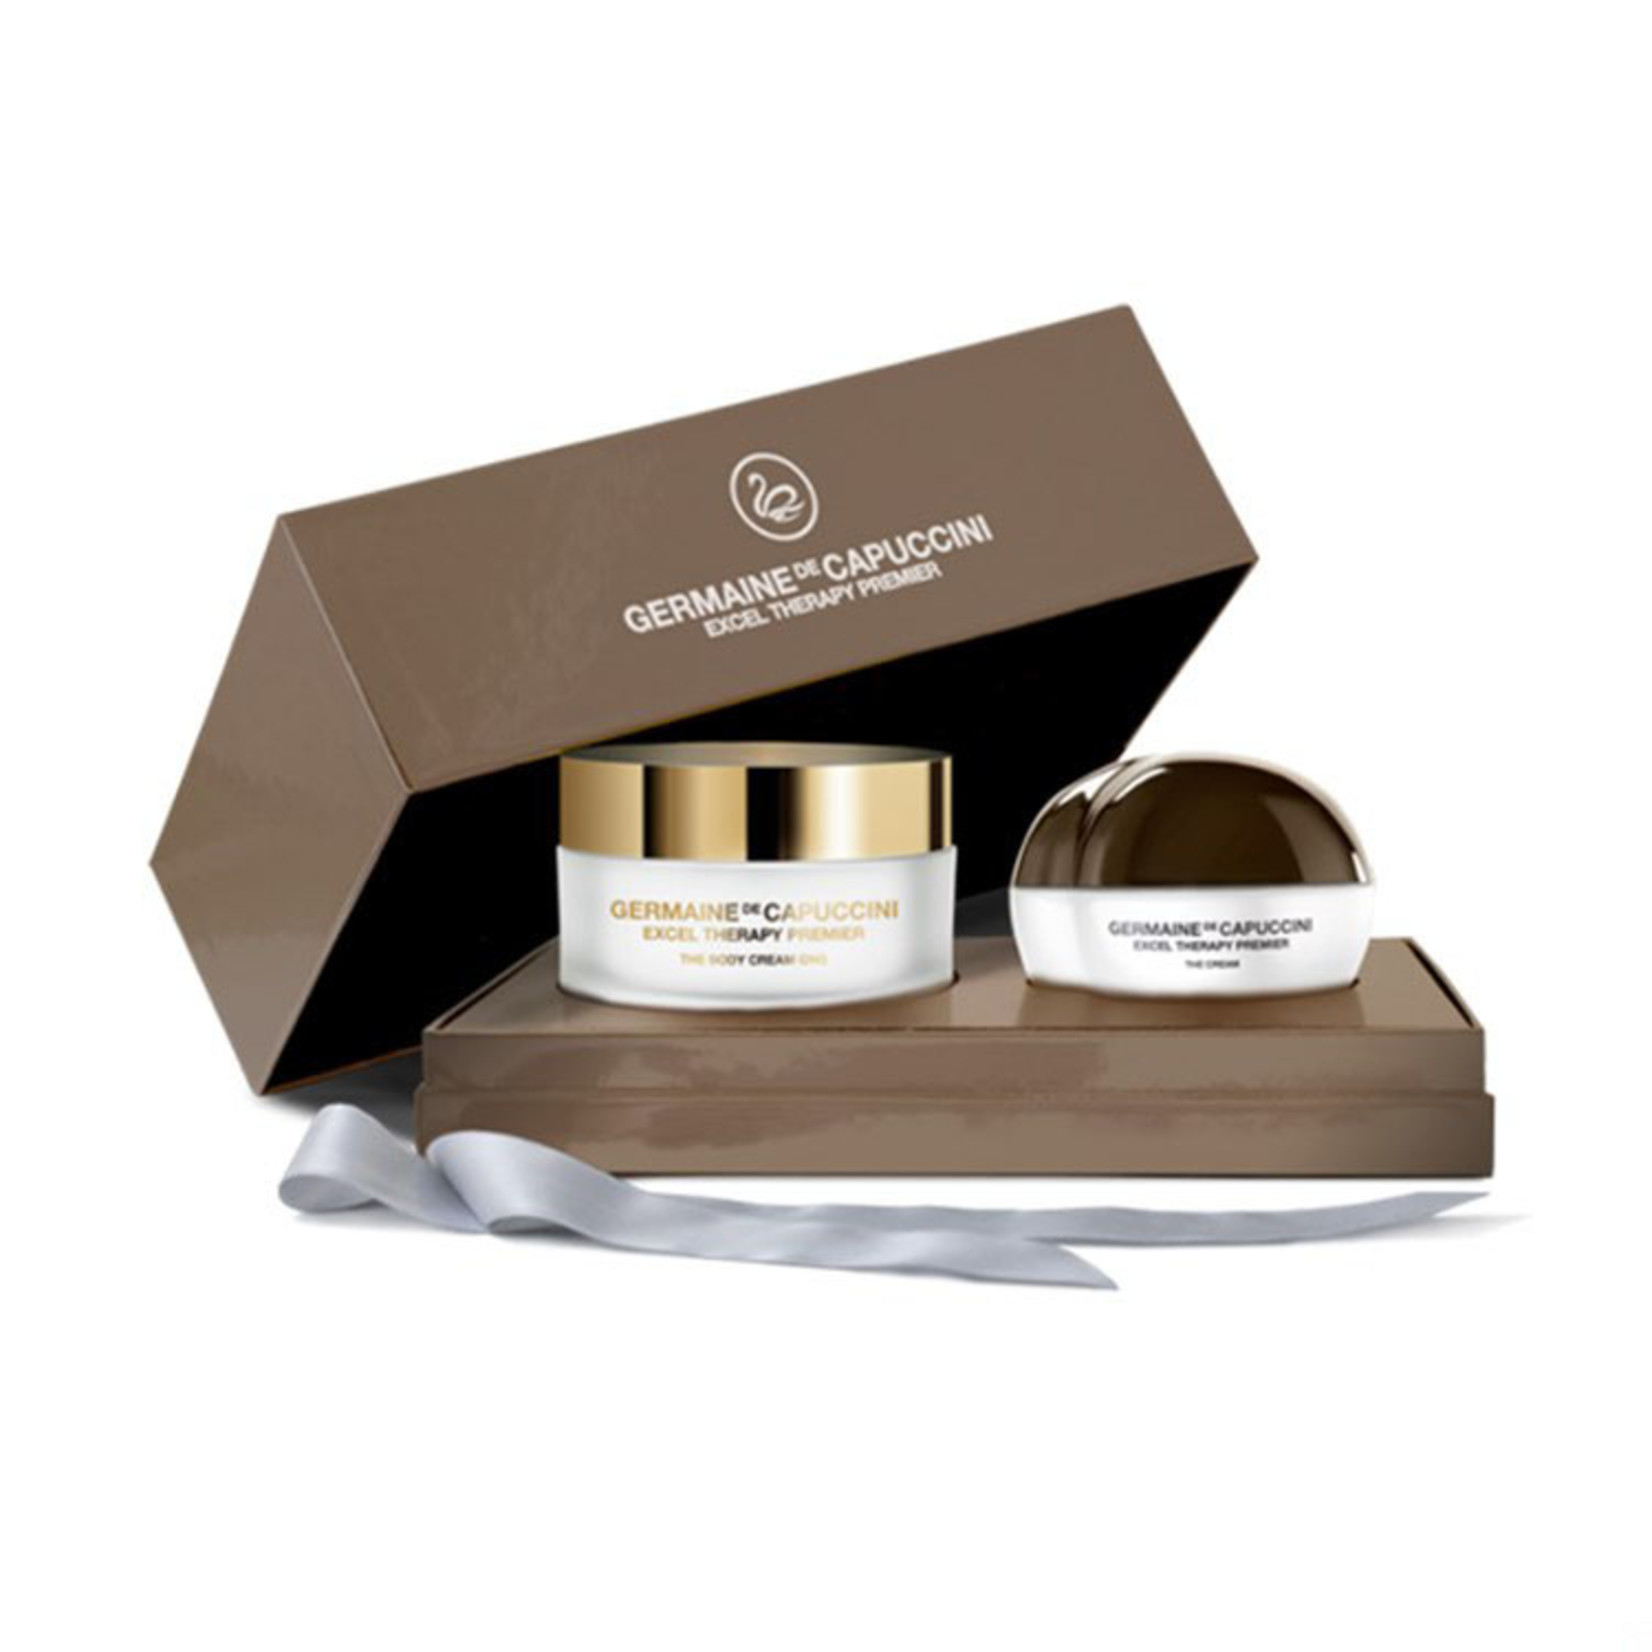 Germaine de Cappucini The Cream Promo